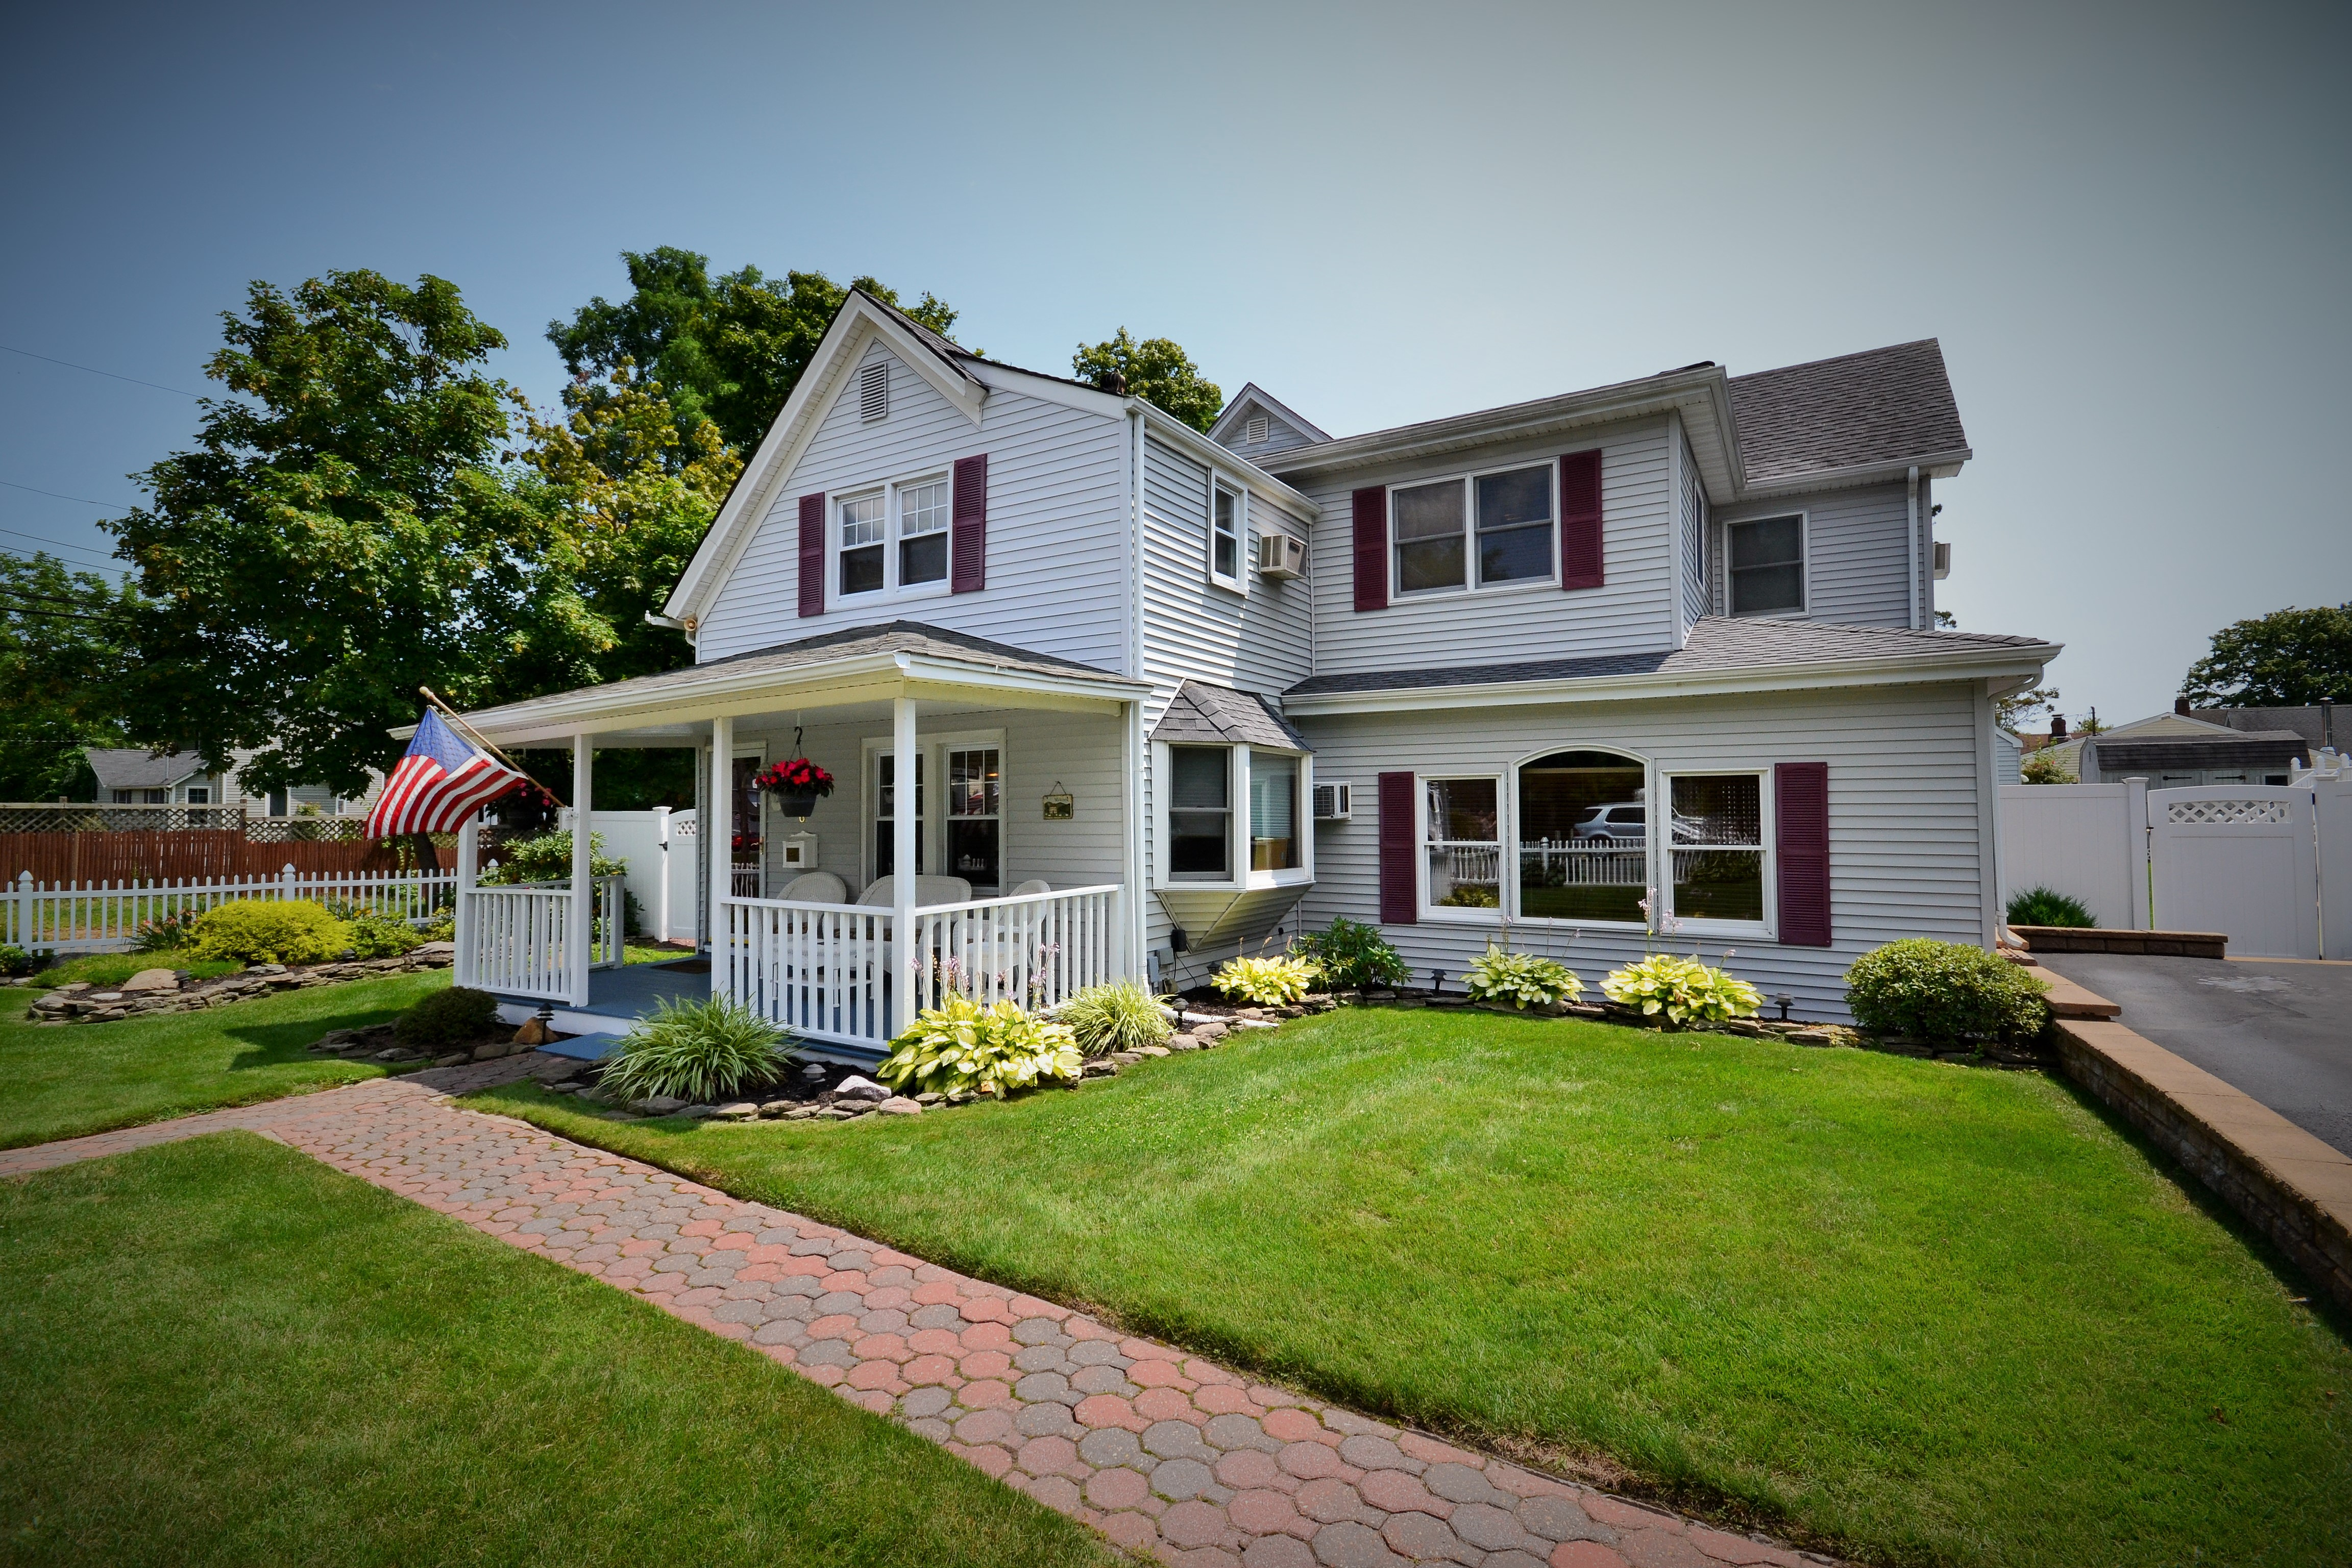 Single Family Home for Sale at Colonial 36 Hiddink St Sayville, New York 11782 United States